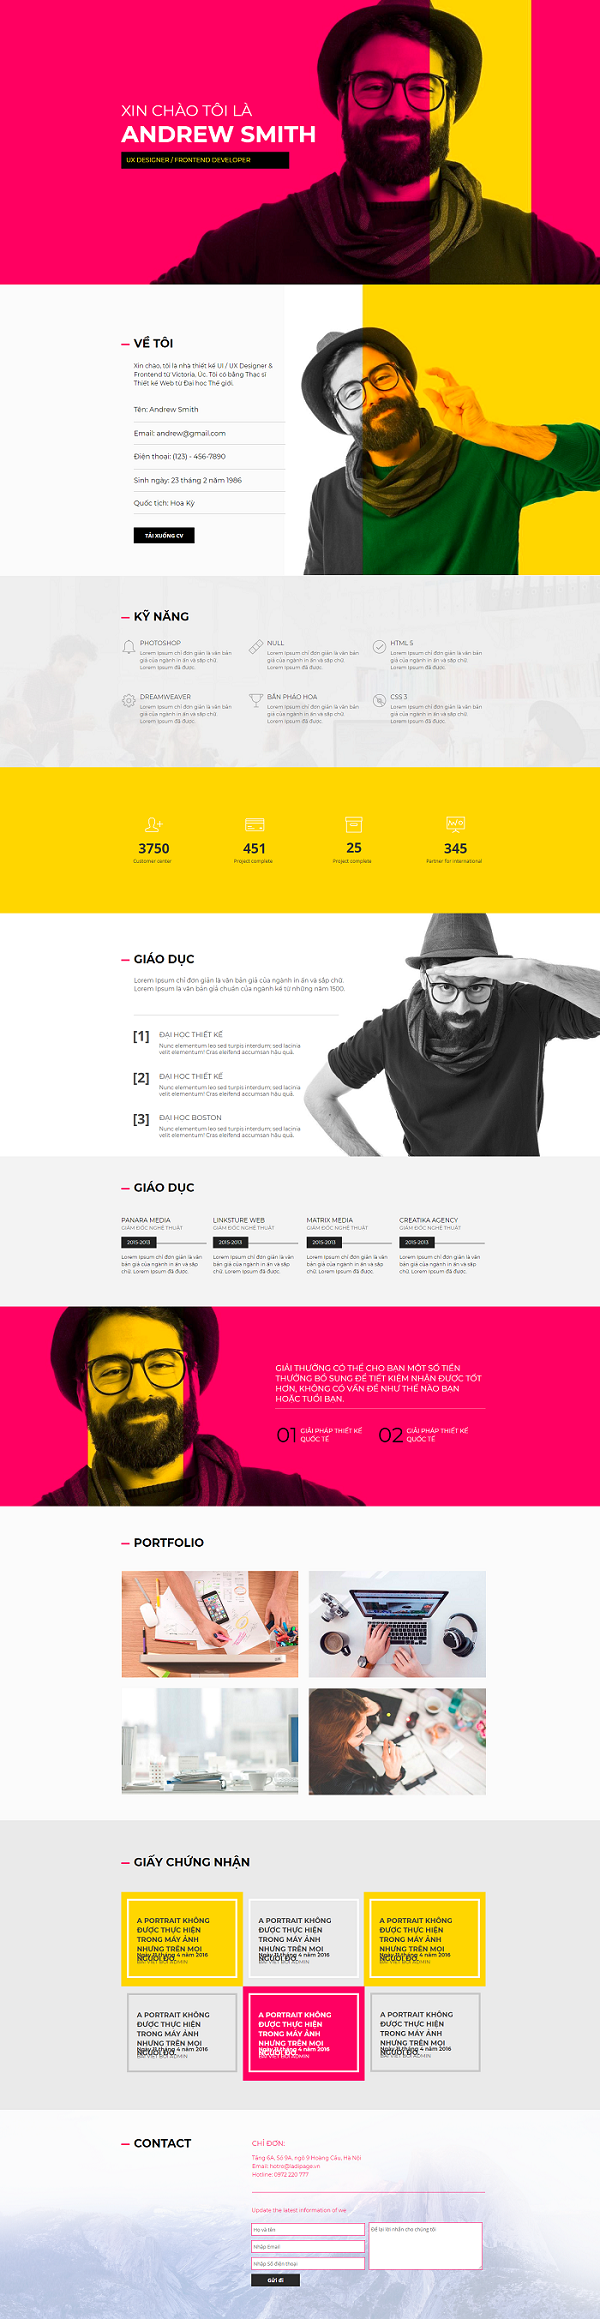 Giao diện website Profile ANDREW SMITH - Thiết kế website CIP